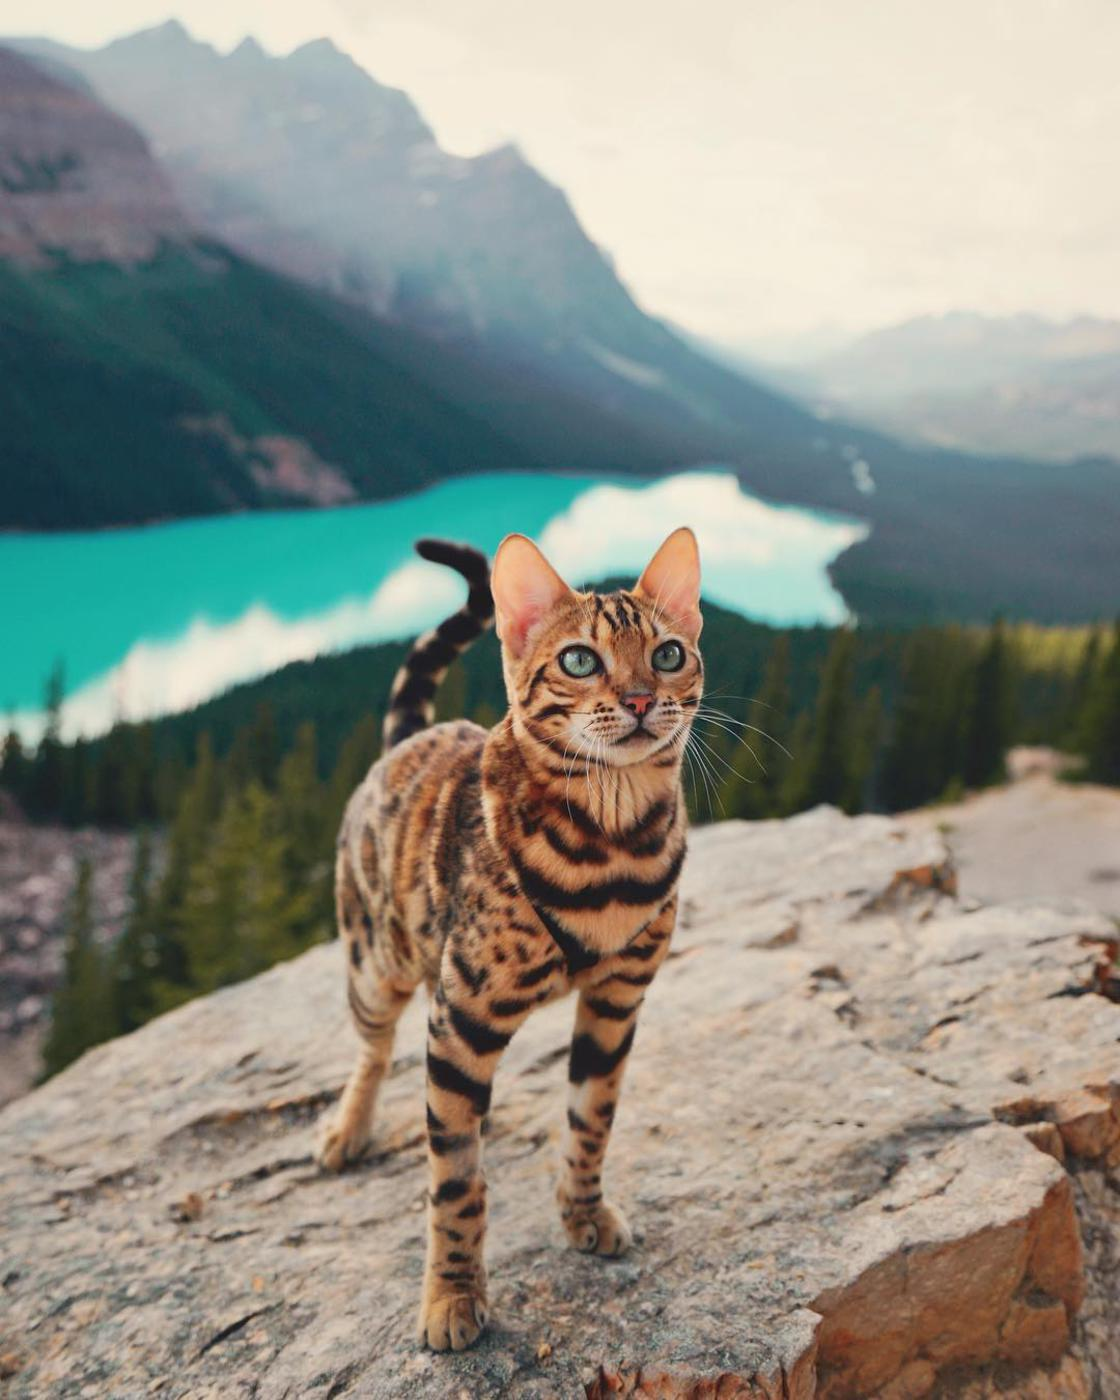 Suki The Cat - Les aventures d'un chat a travers le Canada sauvage